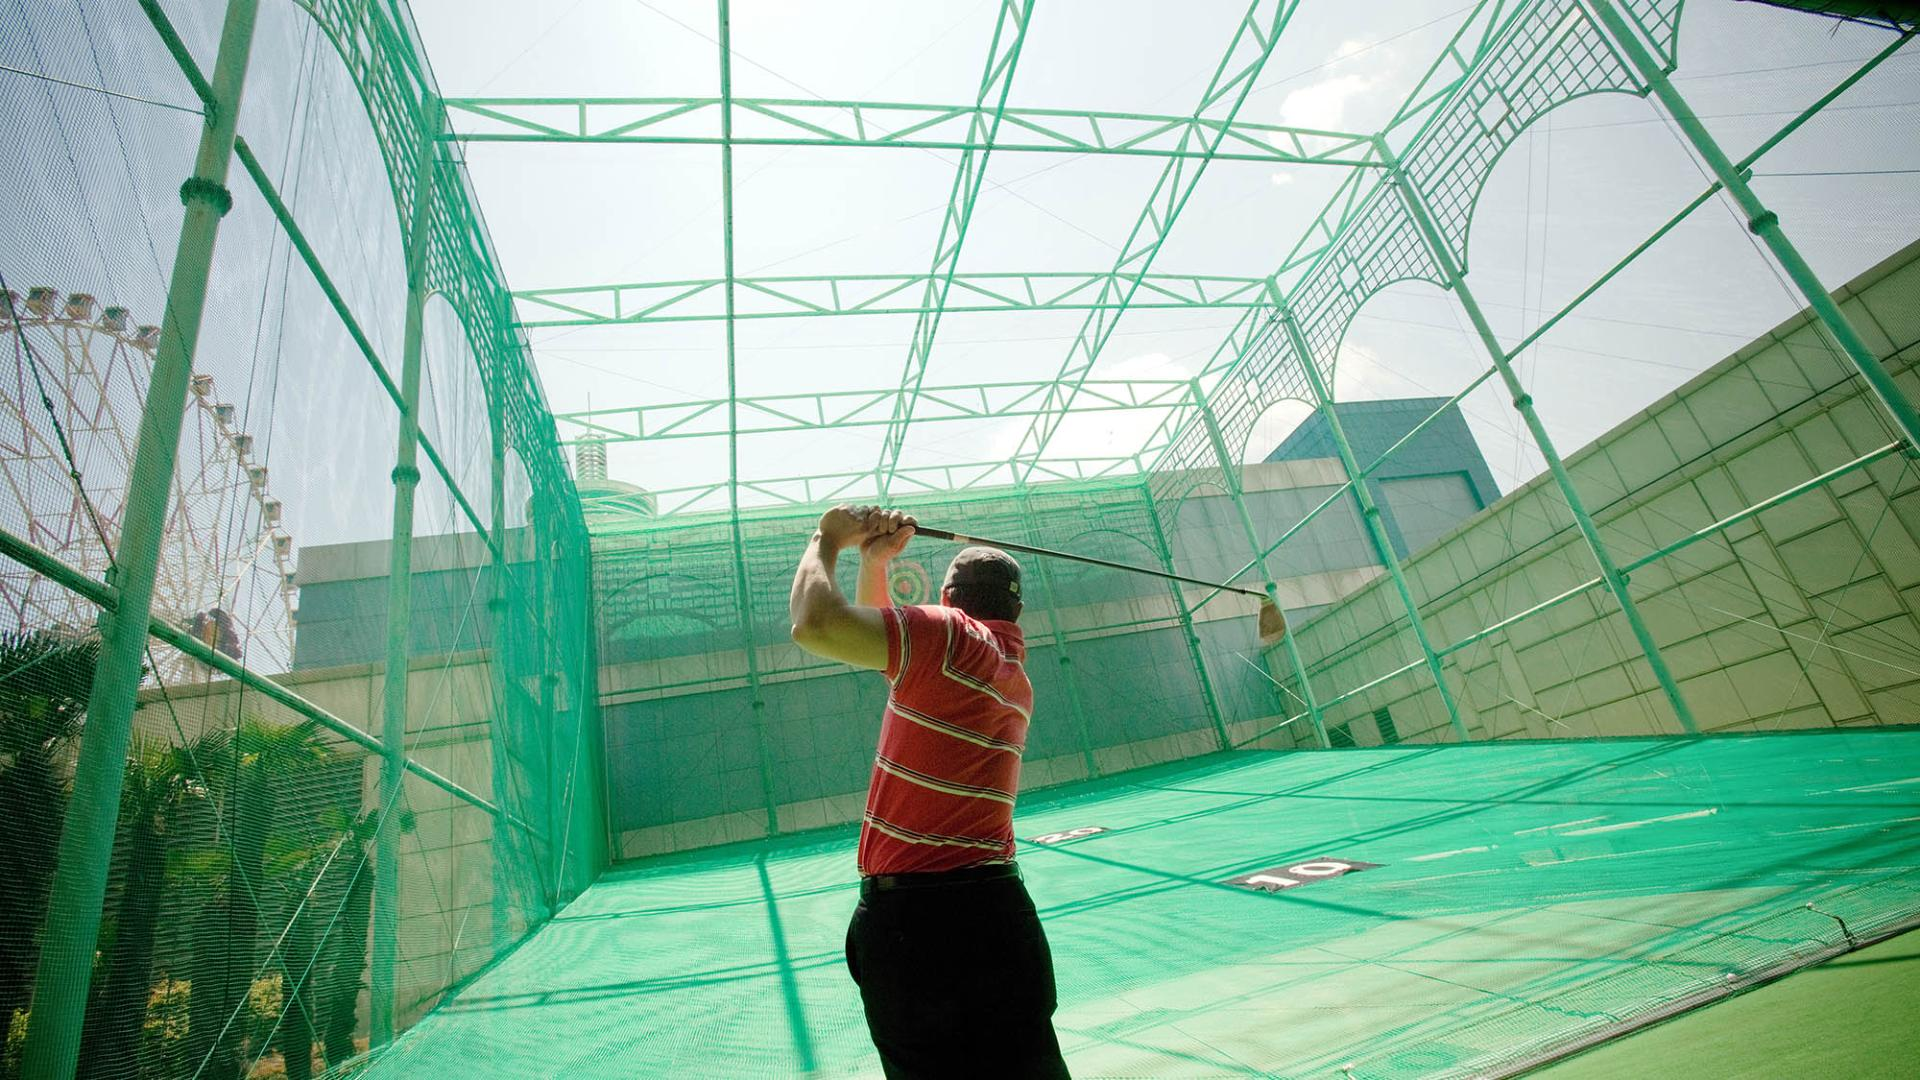 Lotte Hotel Ulsan-Facilities-Spa&Fitness-Golf Driving Range